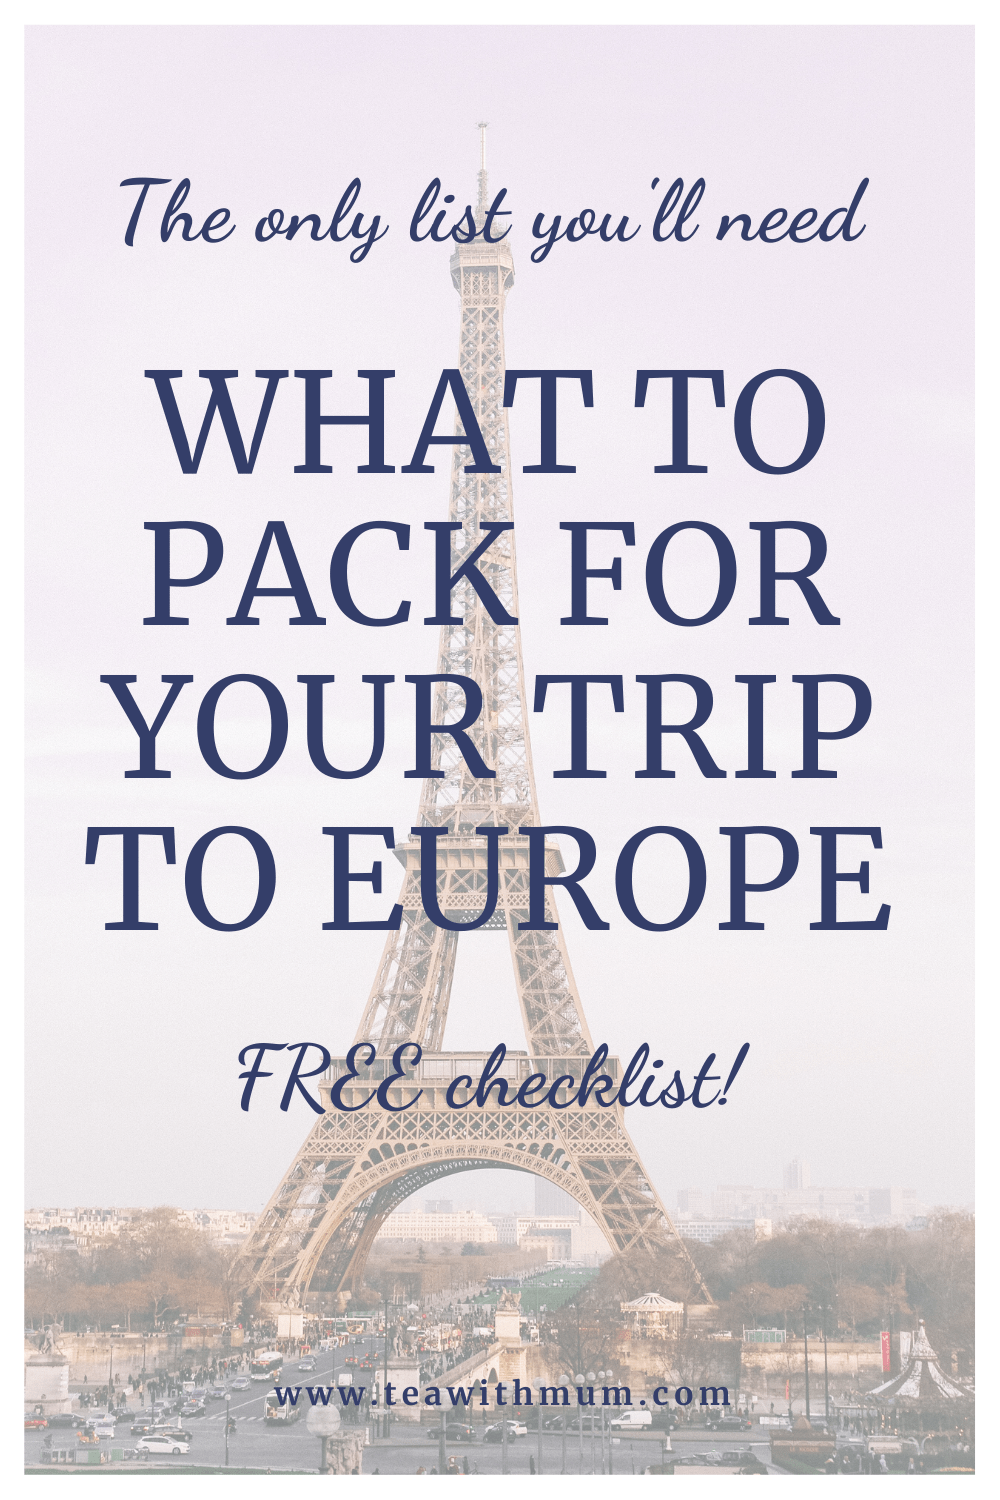 The only list you'll need: What to pack for your trip to Europe. With free checklist! Image of Eiffel Tower at sunset